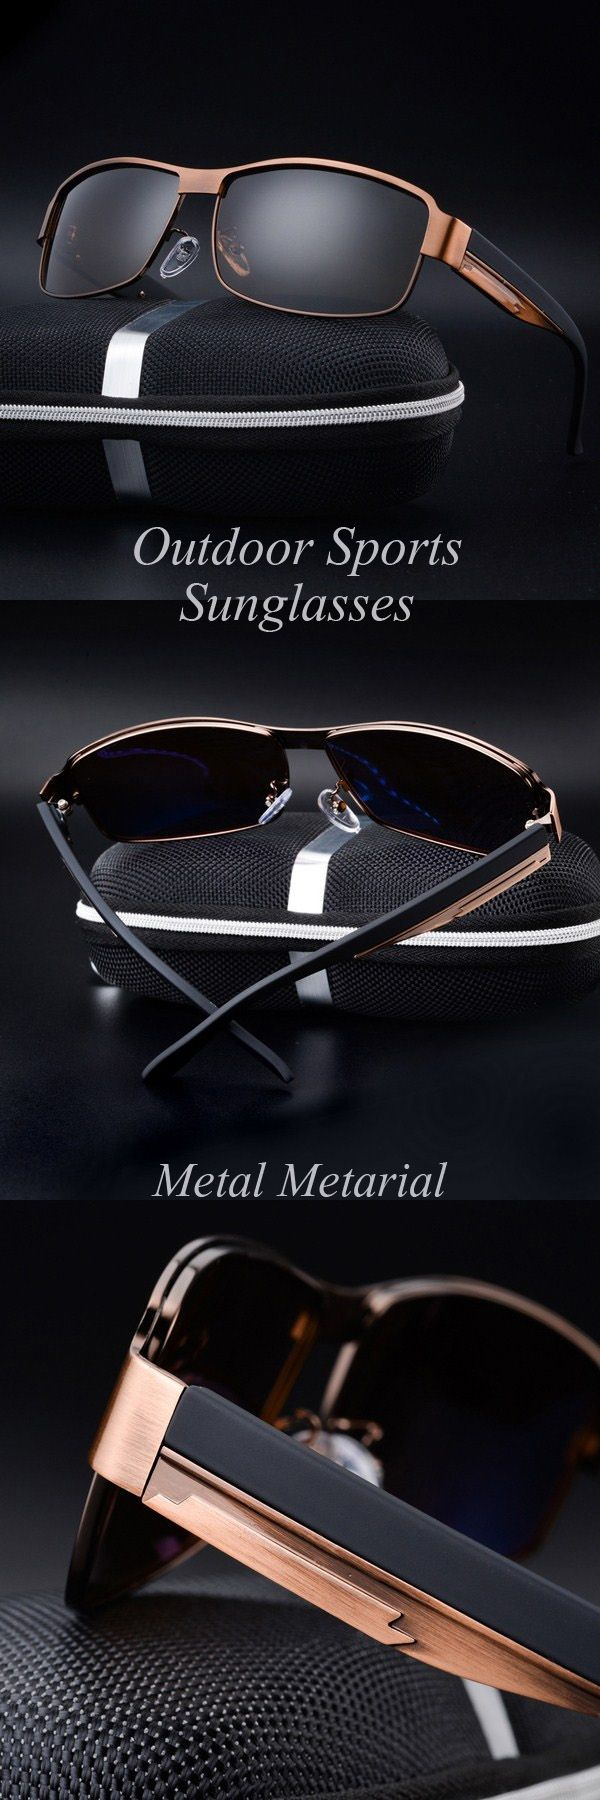 US$11.59+Free shipping. Men's fashion and style, men's fashion summer, designer and vintage sunglasses, eye glasses, designer prescription glasses. Love outdoor activity and prefer this sunglasses. FrameColor: Black, Gold, Sliver, Gun, Brown.